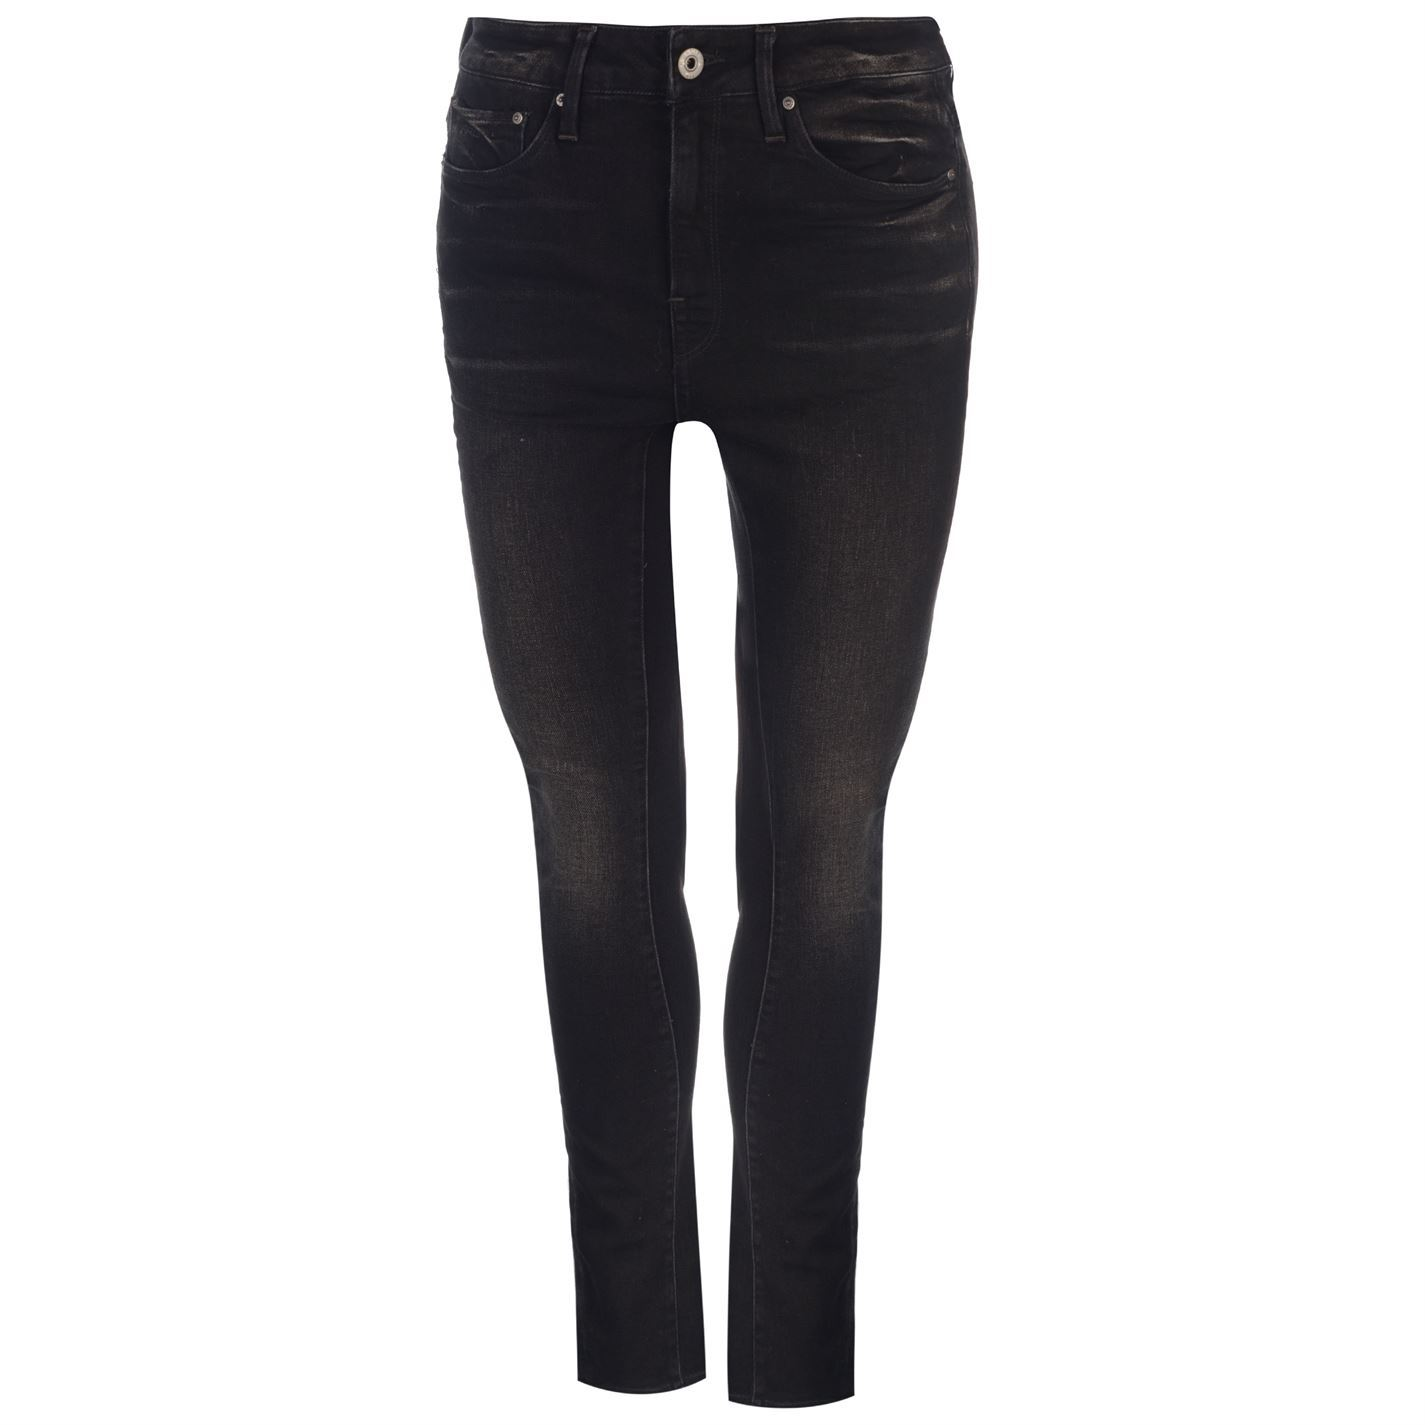 G-Star-Mens-3301-Attacc-Low-Boyfriend-Jeans-Straight-Pants-Trousers-Bottoms